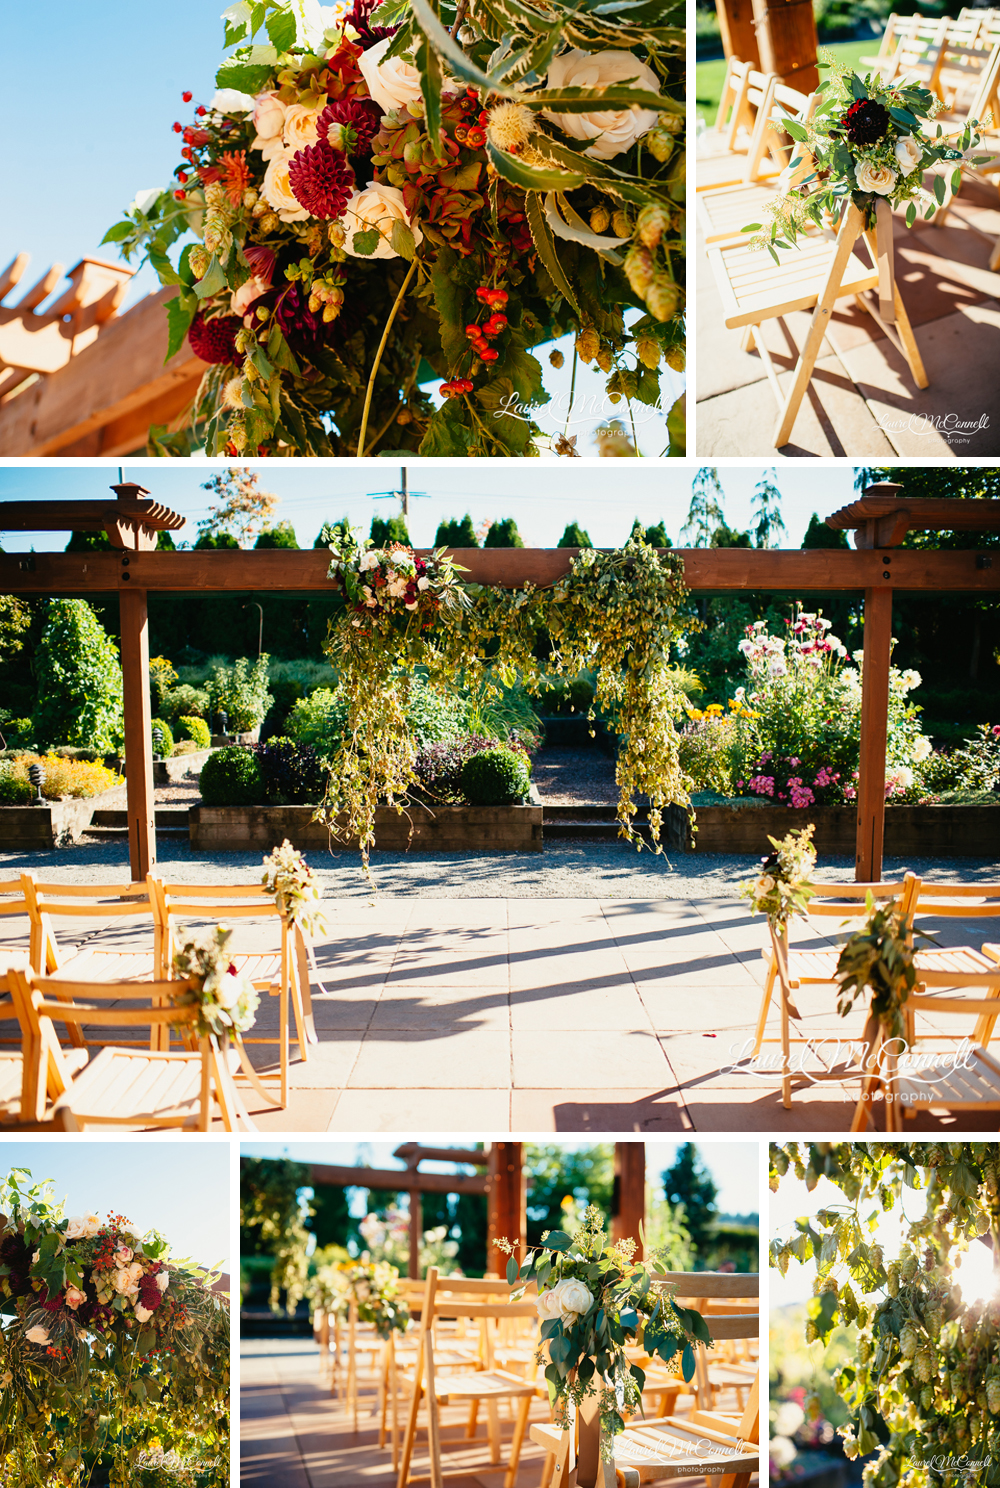 Outdoor Willow's Lodge ceremony featuring rustic wood chairs and decor, an arch made of hops, and rich autumnal florals photographed by Laurel McConnell Photography.